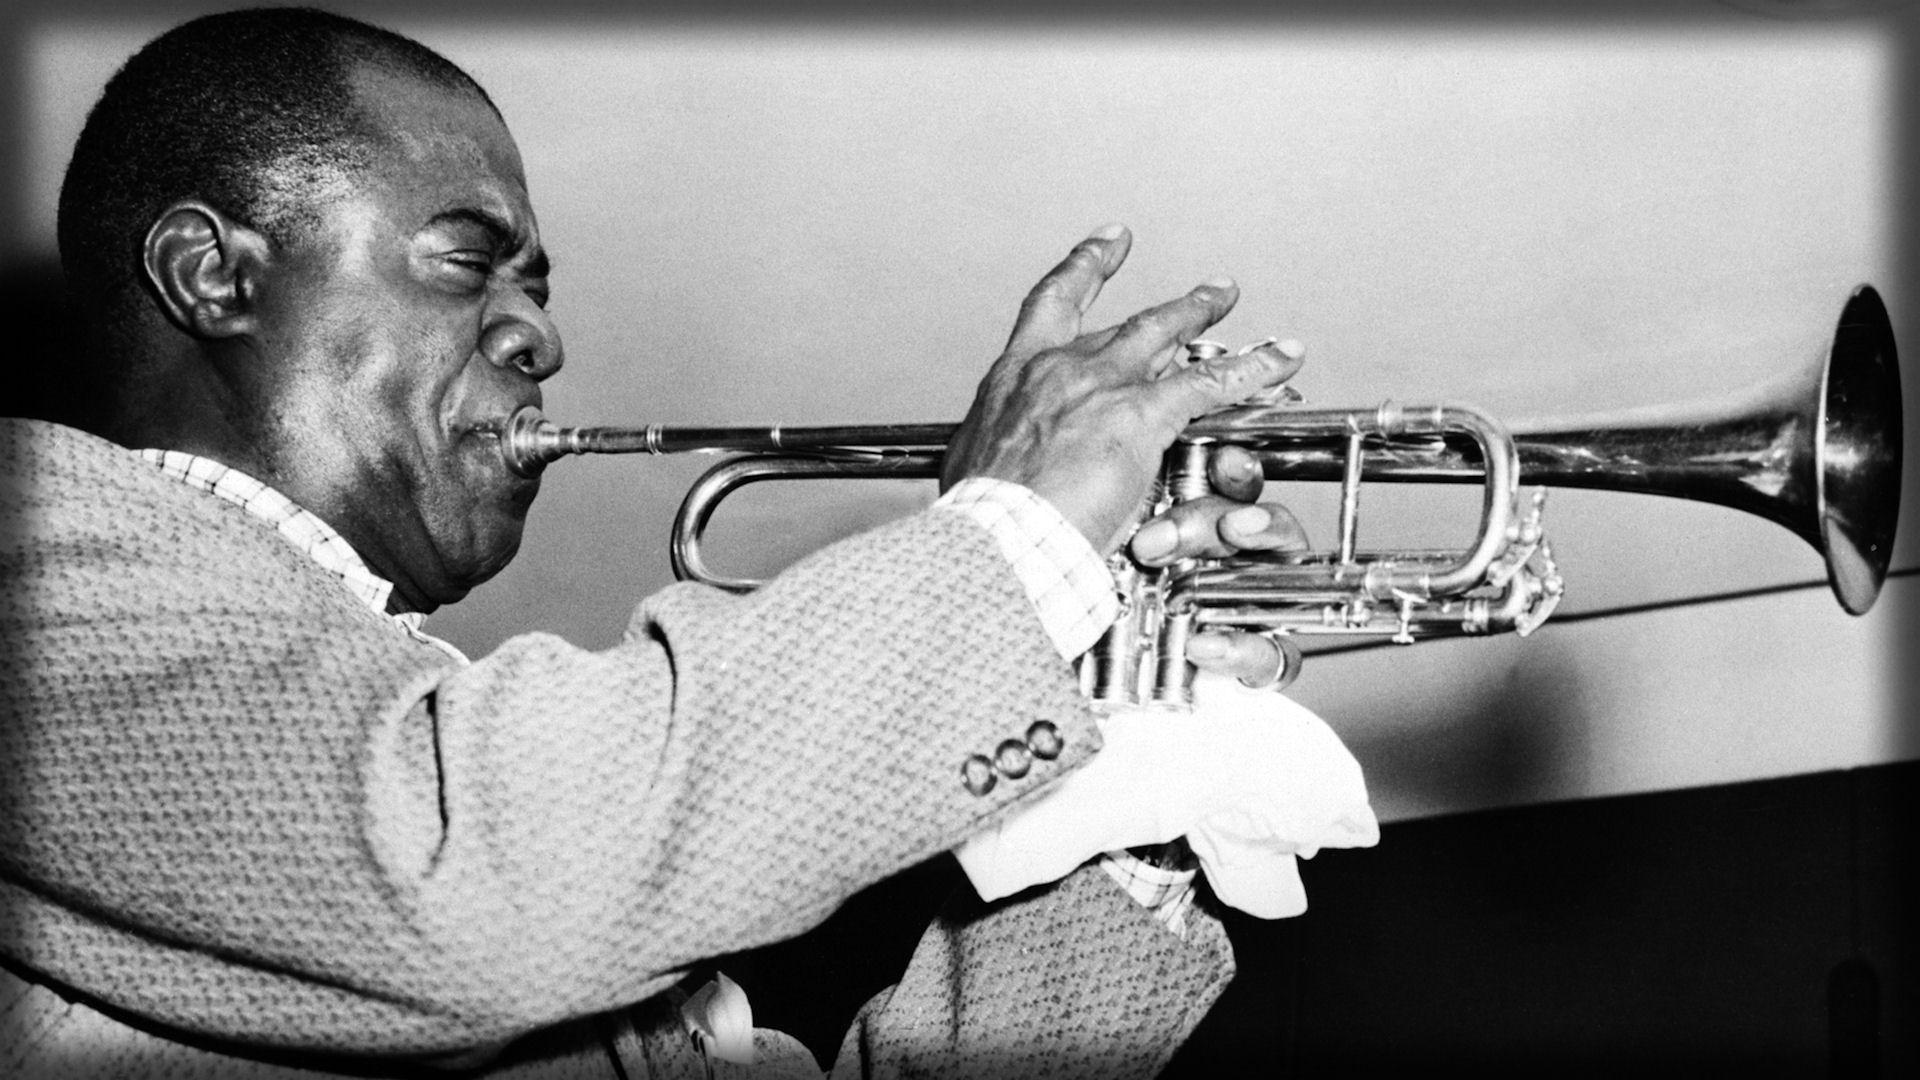 Download Wallpaper 1920x1080 louis armstrong, pipe, jacket, face ...